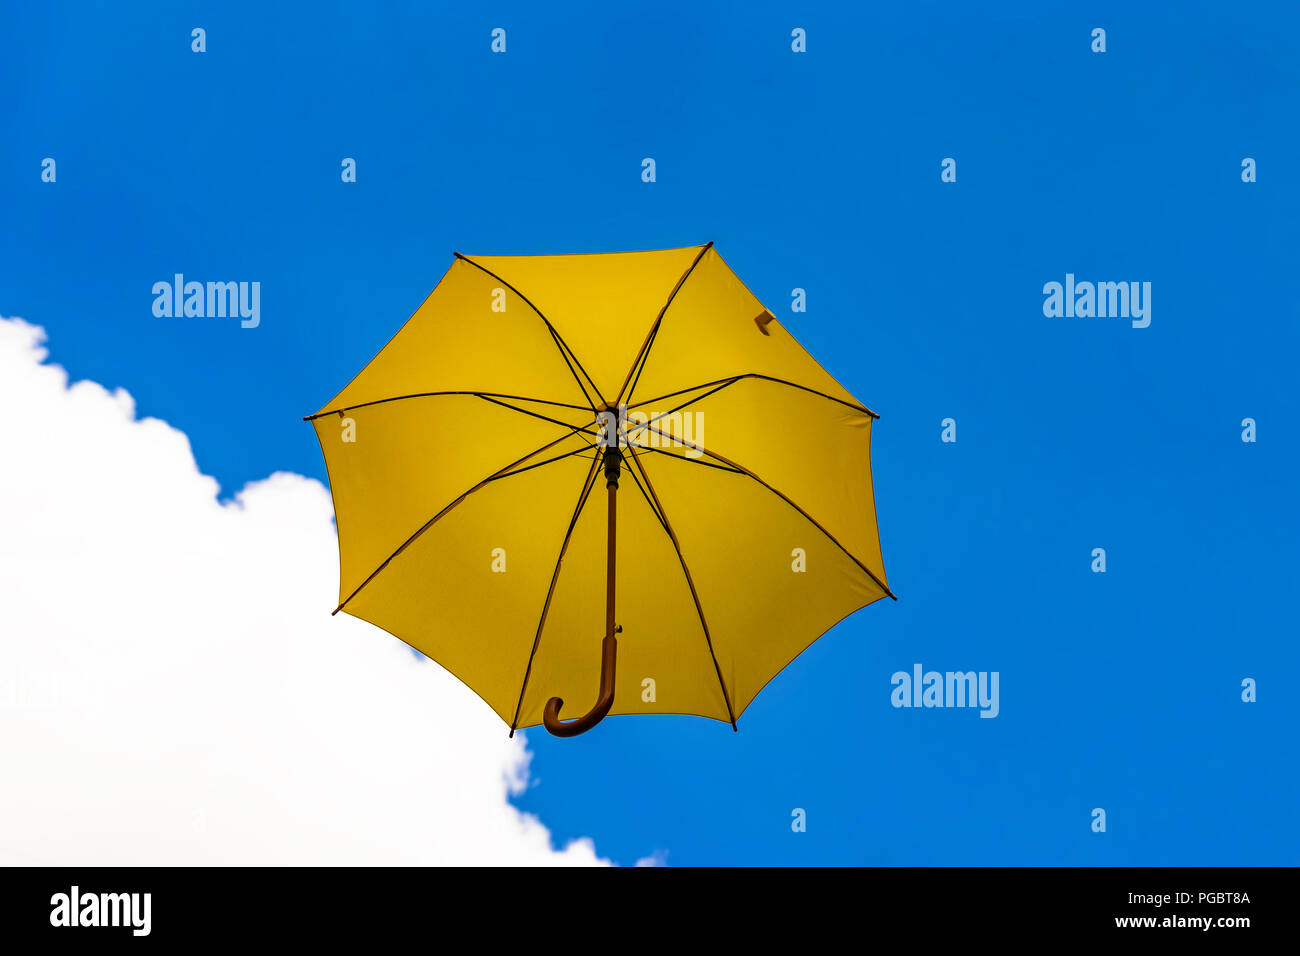 Flying yellow umbrella on a blue sky with white cloud - Stock Image